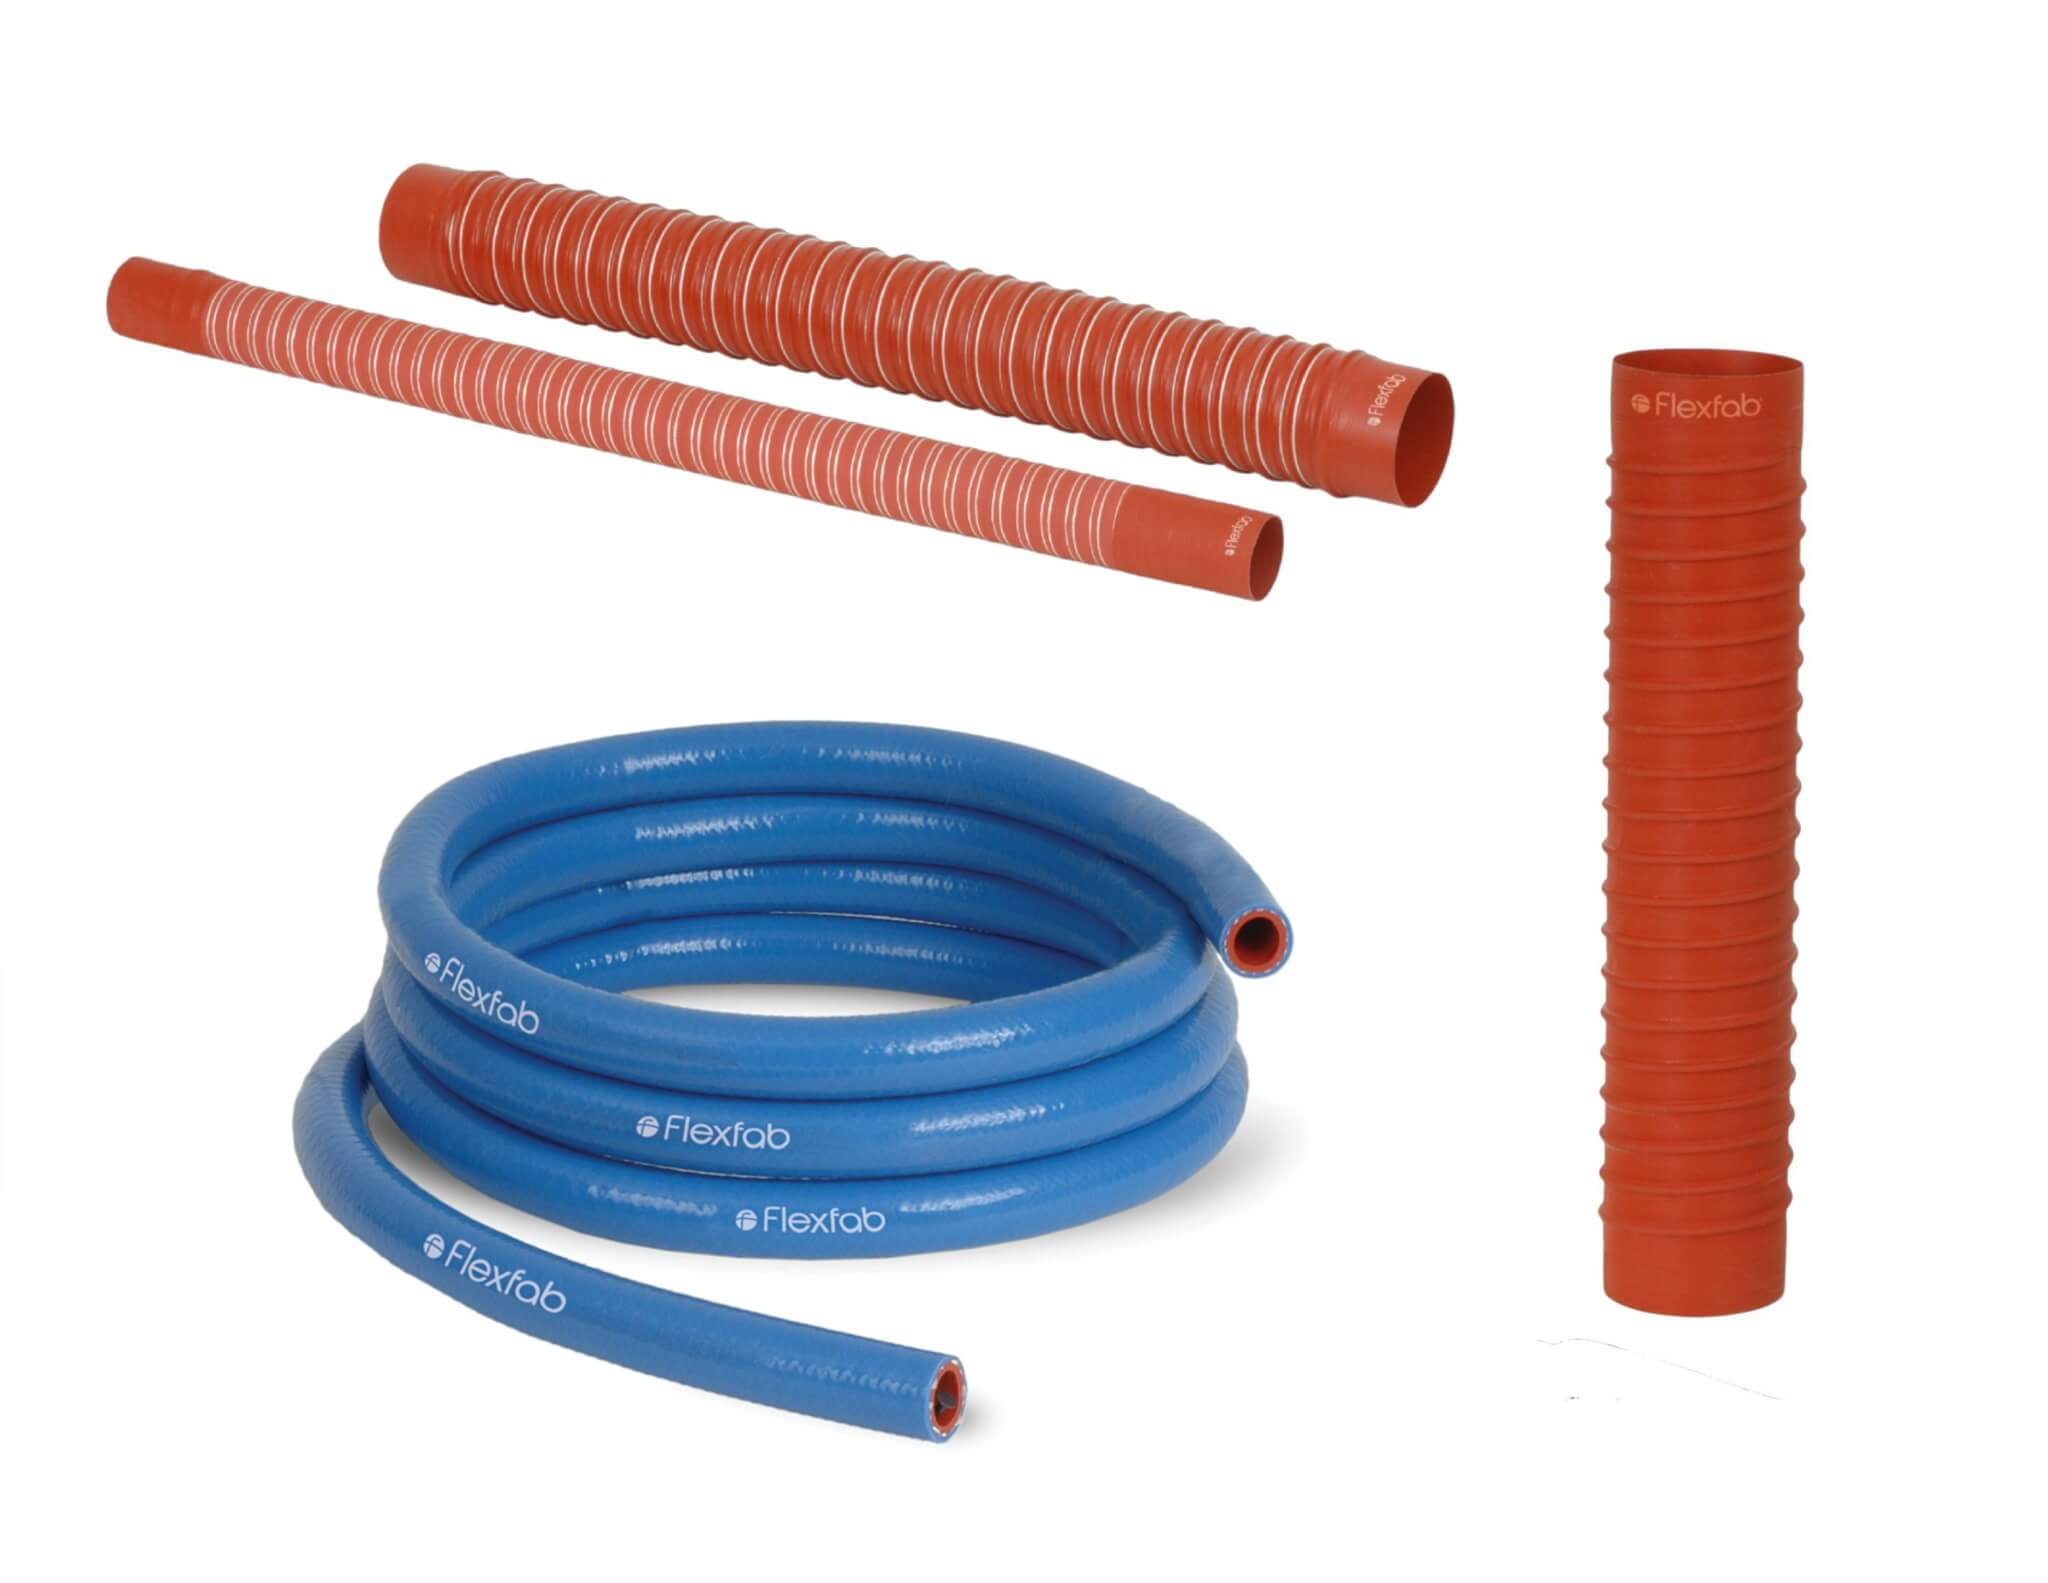 Hoses and light-weight flexible ducting for Movement of fluids and air